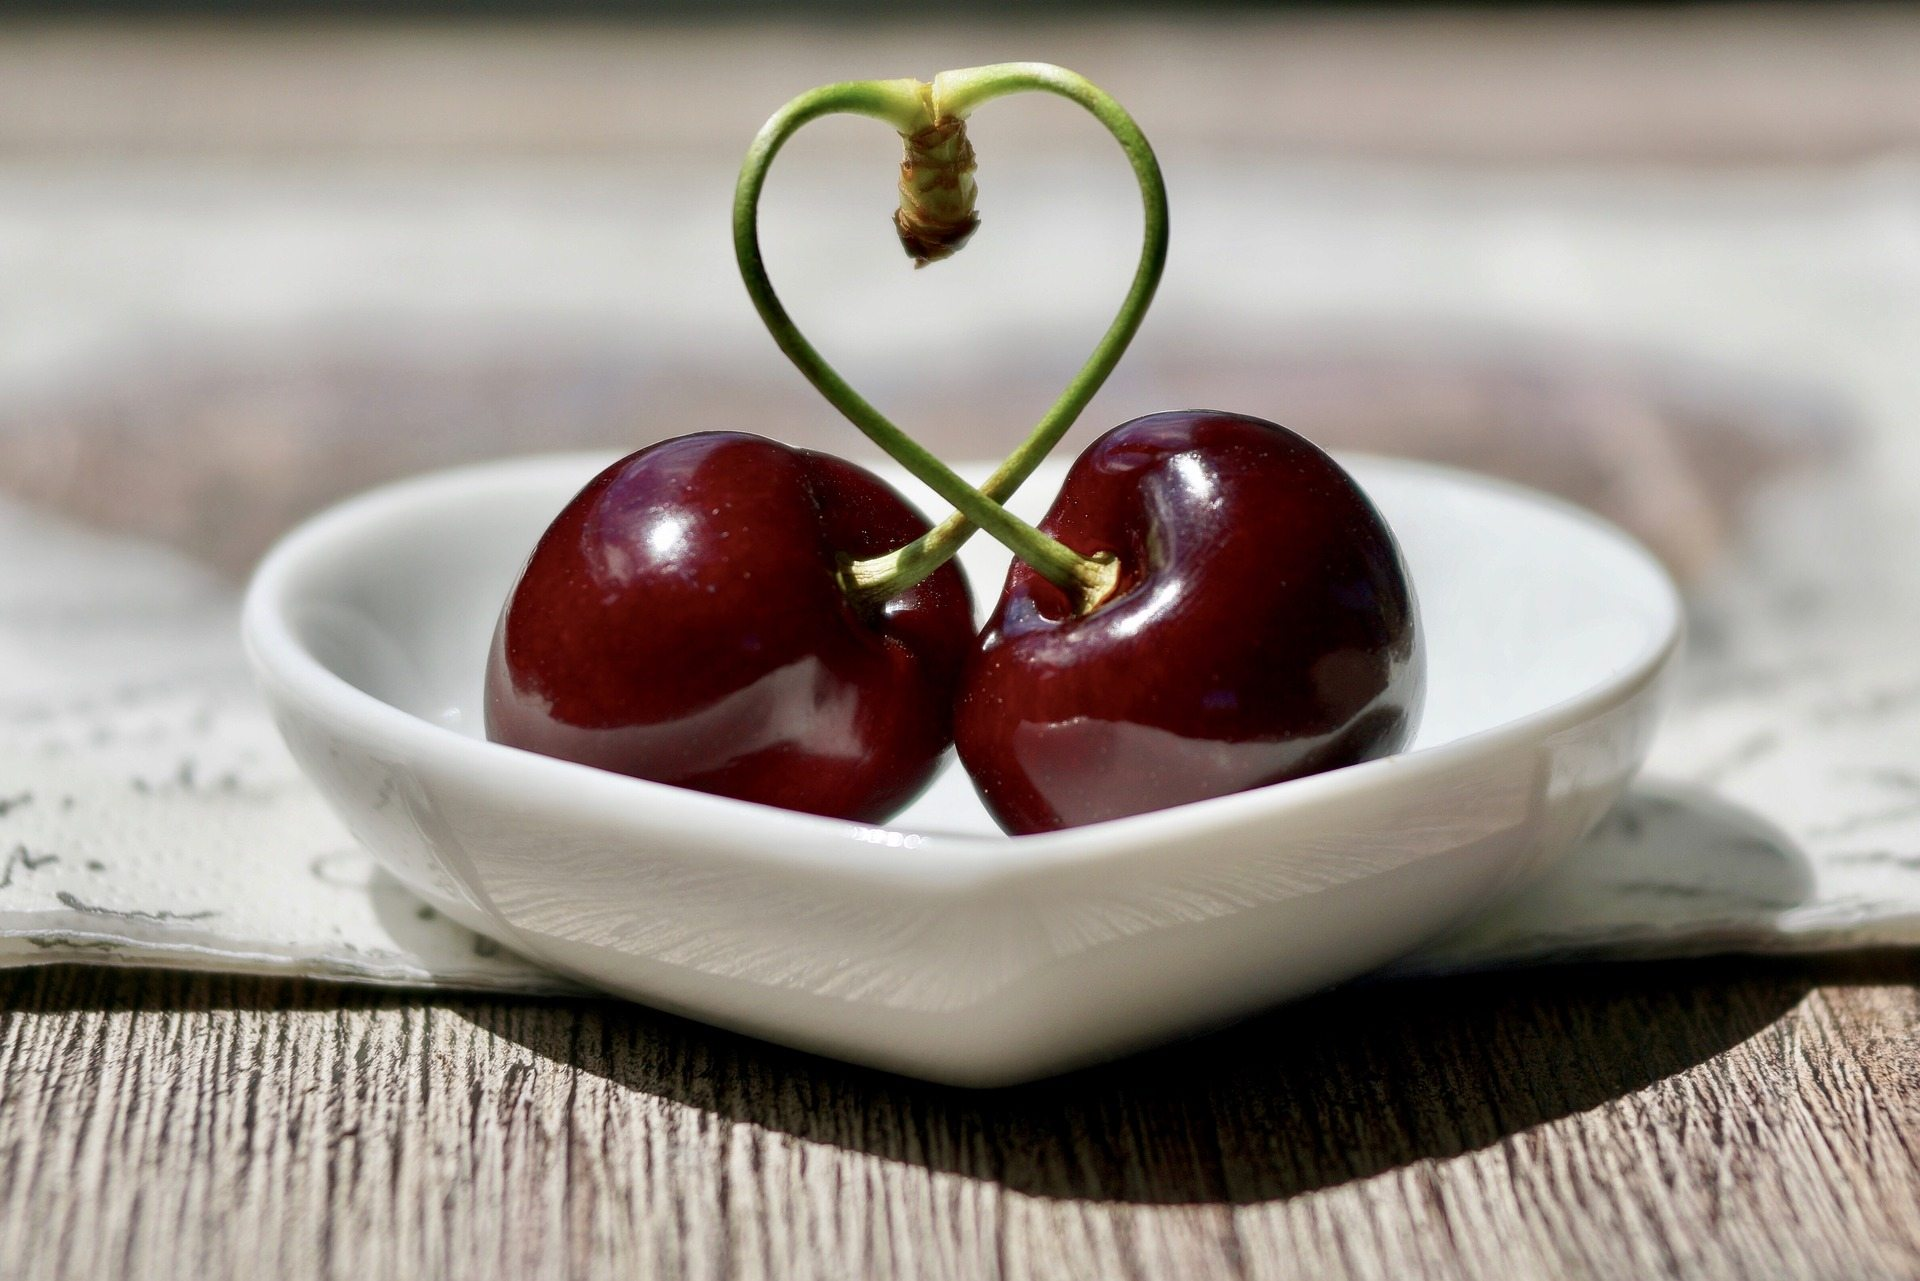 romantic thing Pixabay cherries-2444836_1920